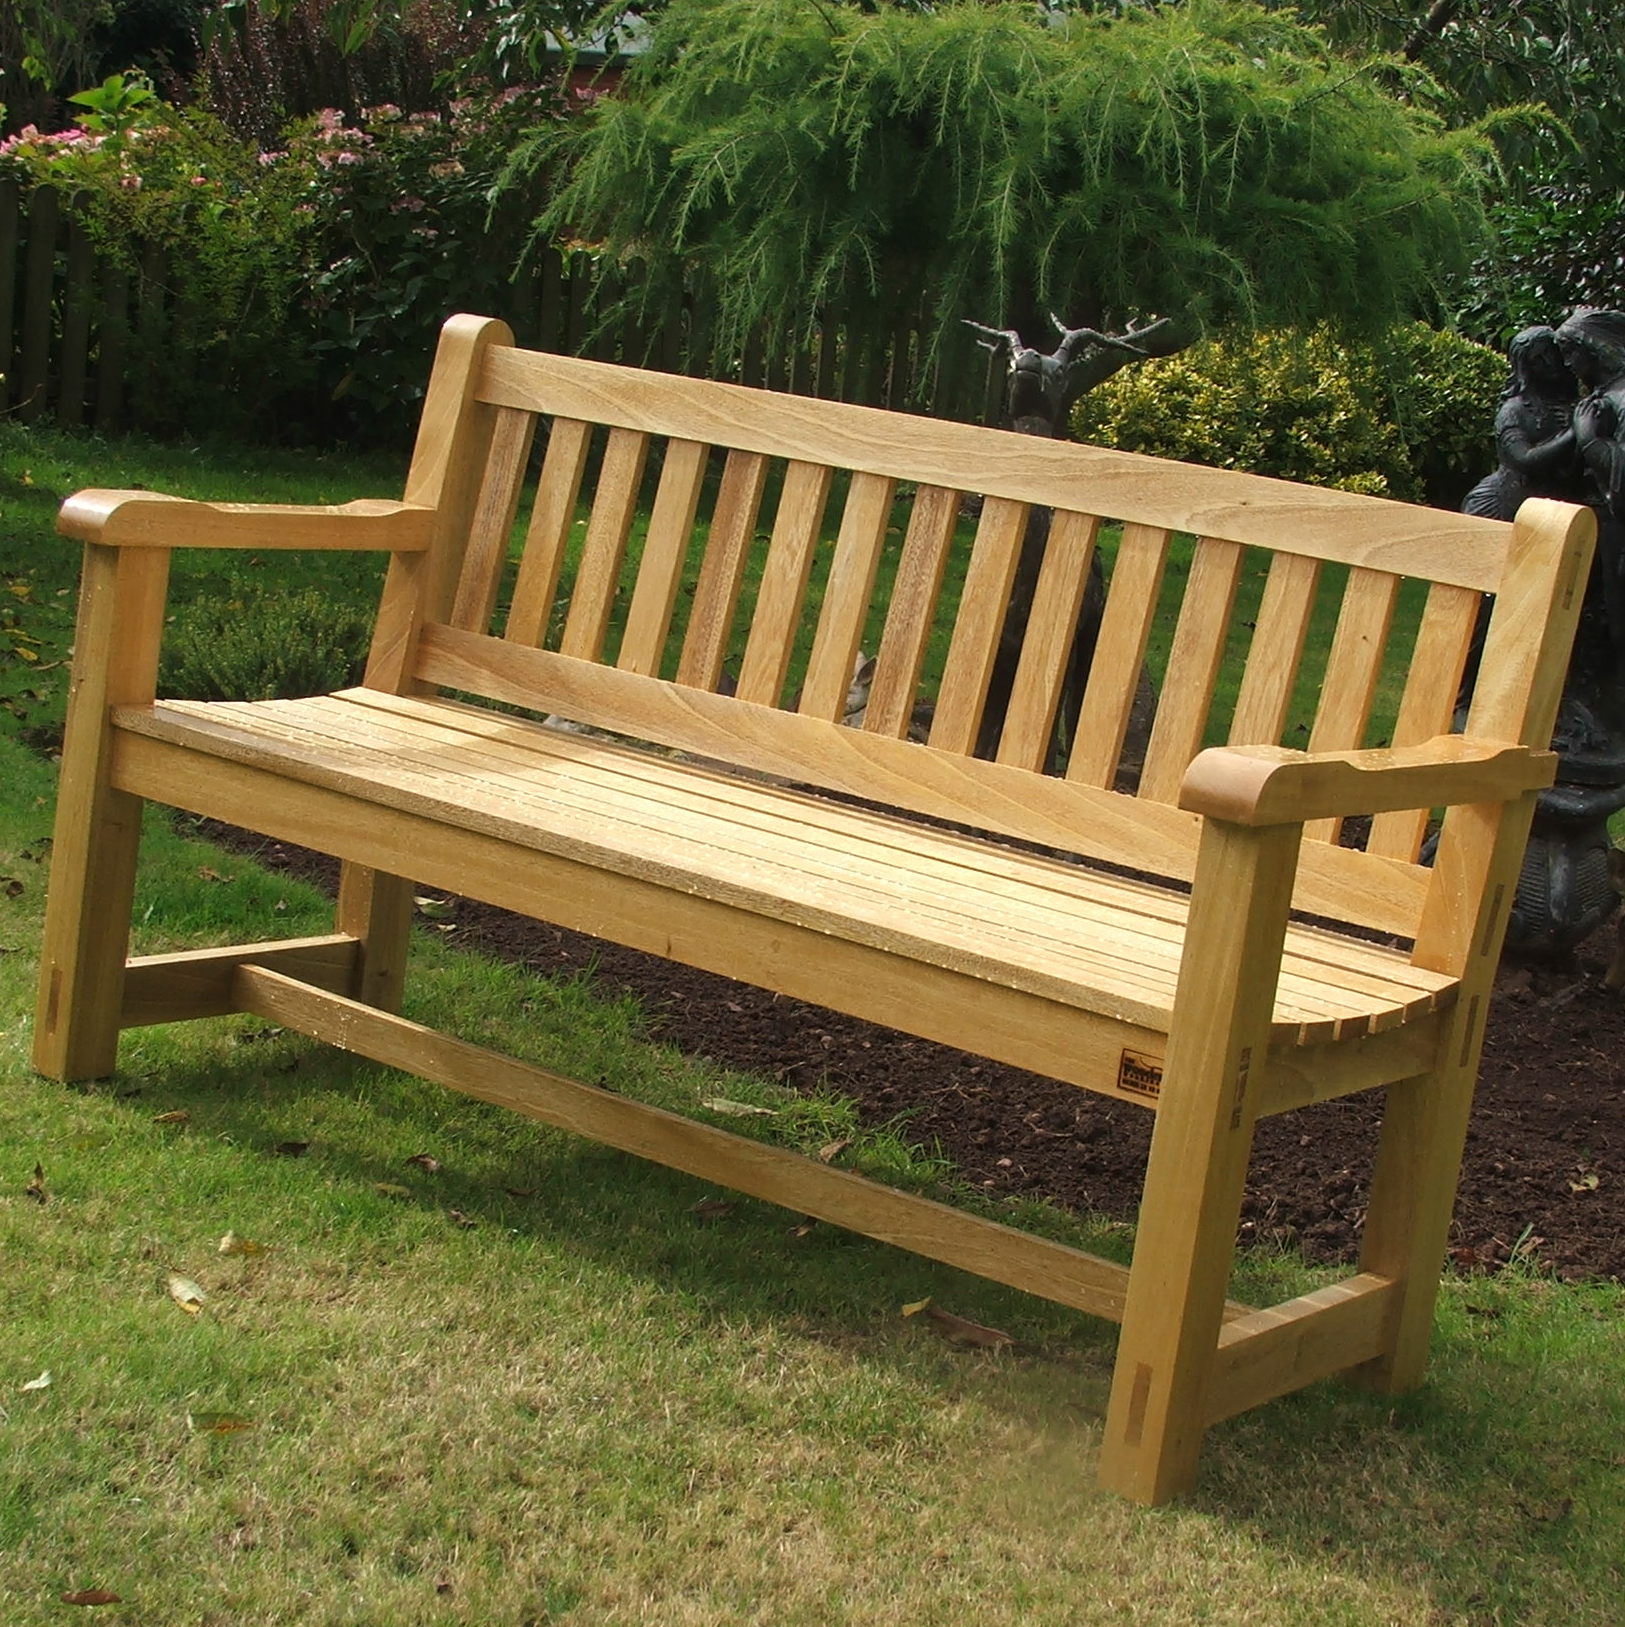 Patio Home Plans Hardwood Garden Bench Idigbo The Wooden Workshop